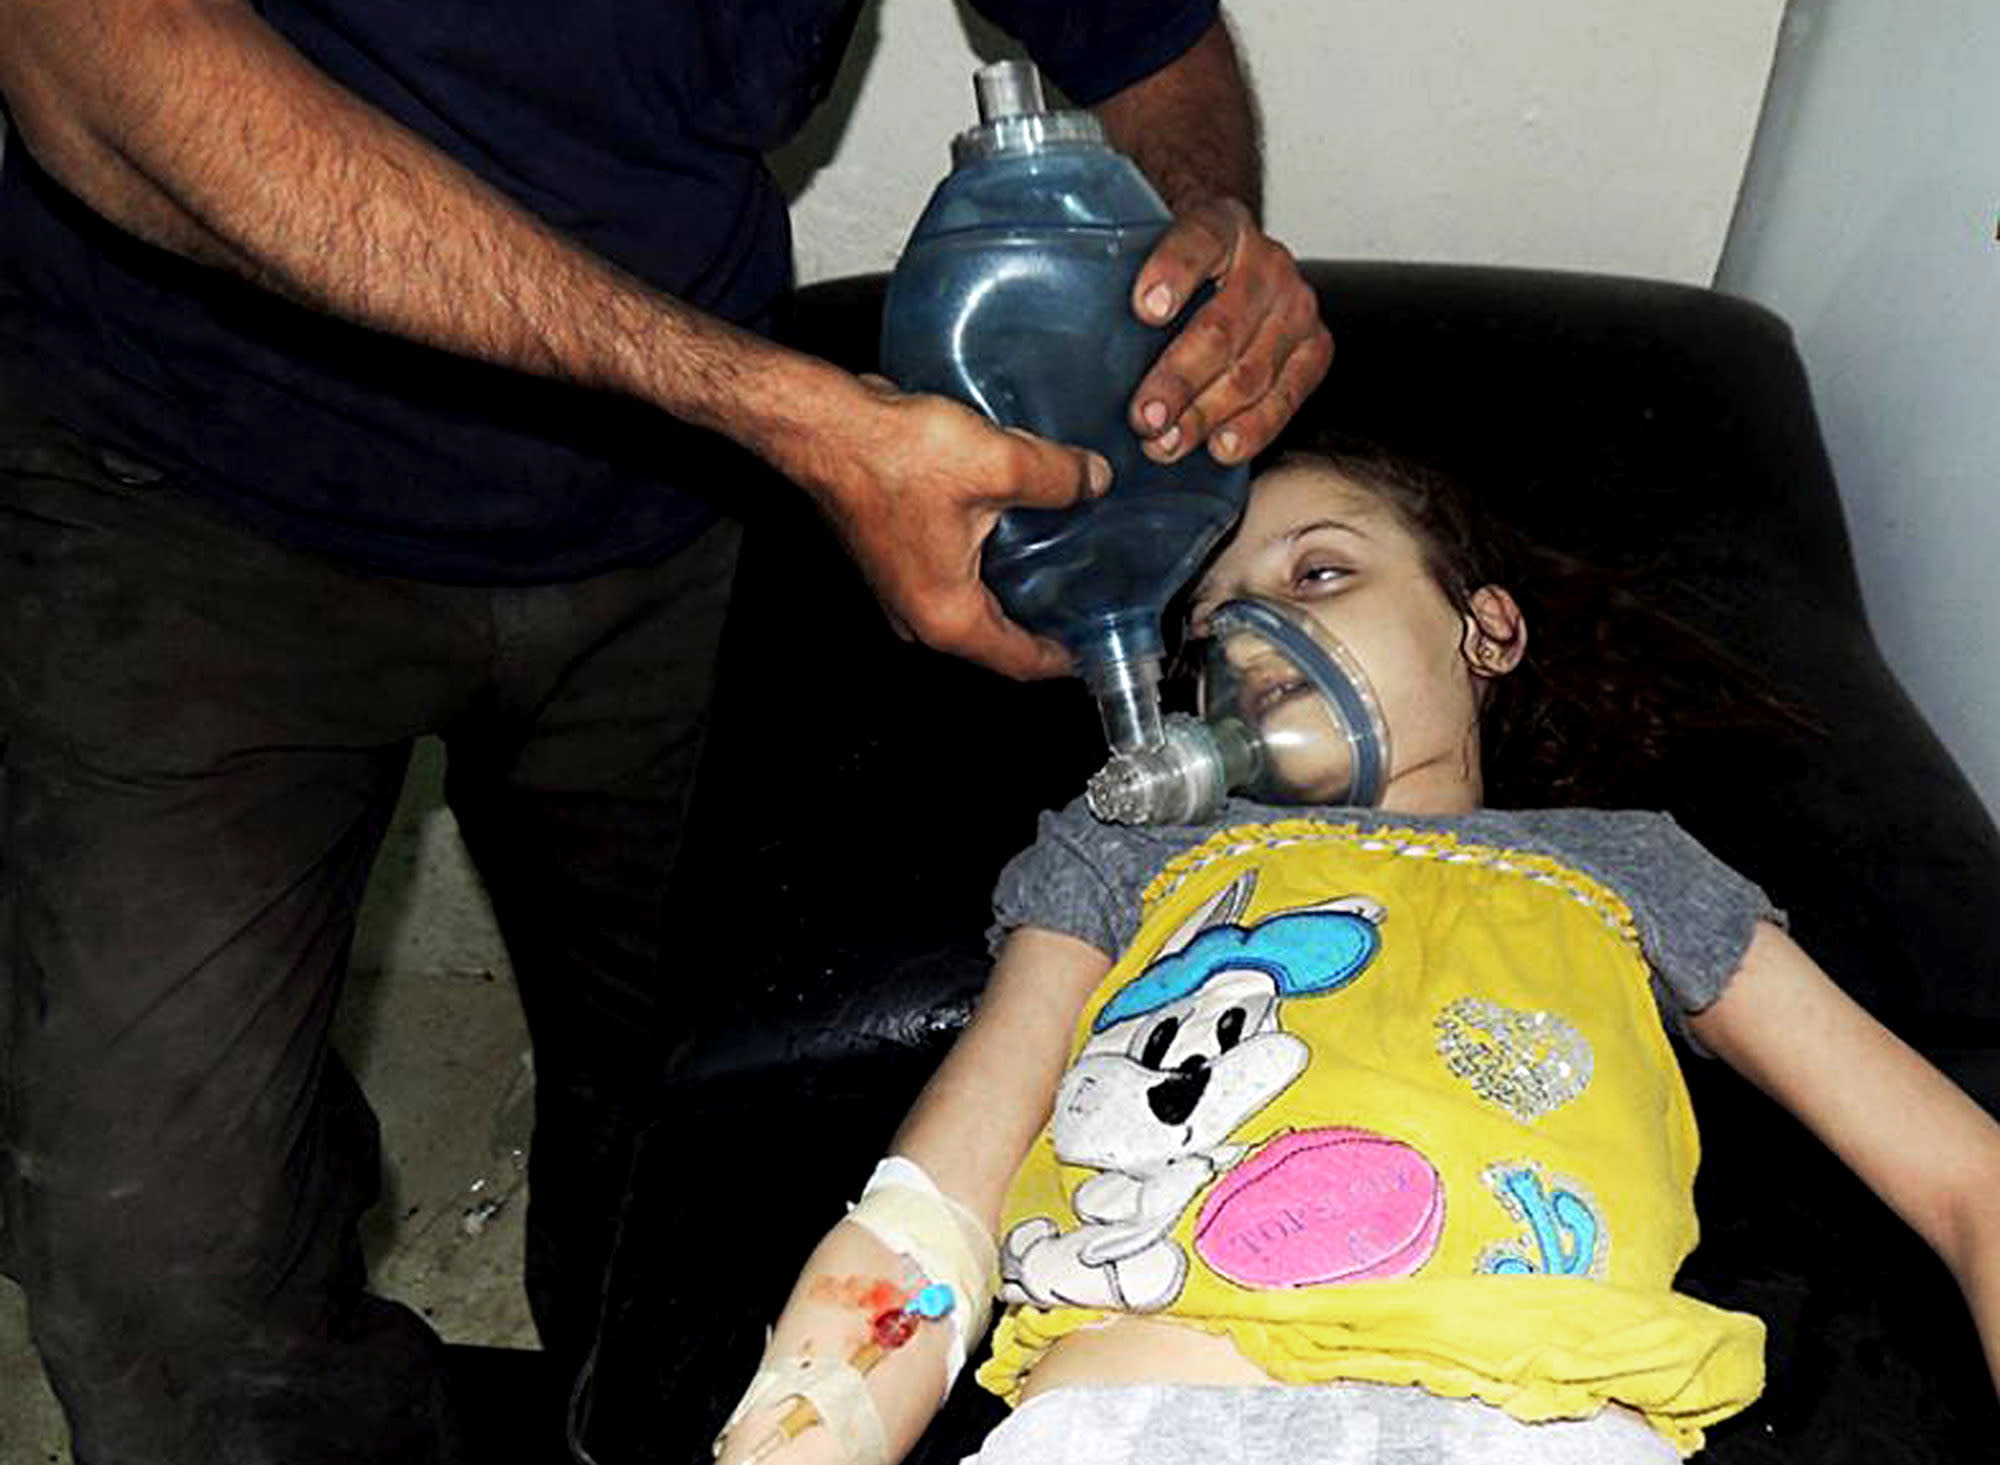 FILE - In this Aug. 21, 2013, file citizen journalism image provided by the Local Committee of Arbeen which has been authenticated based on its contents and other AP reporting, a Syrian girl receives treatment at a makeshift hospital in Arbeen town, Damascus, Syria. The early-morning barrage against rebel-held areas around the the Syrian capital Damascus immediately seemed different: The rockets made a strange, whistling noise. Seconds after one hit near his home, Qusai Zakarya says he couldn't breathe, and he desperately punched himself in the chest to get air. Hundreds of suffocating, twitching victims flooded into hospitals. Others were later found dead in their homes, towels still on their faces from their last moments trying to protect themselves from gas. Doctors and survivors recount scenes of horror from the alleged chemical attack a week ago. (AP Photo/Local Committee of Arbeen, File)